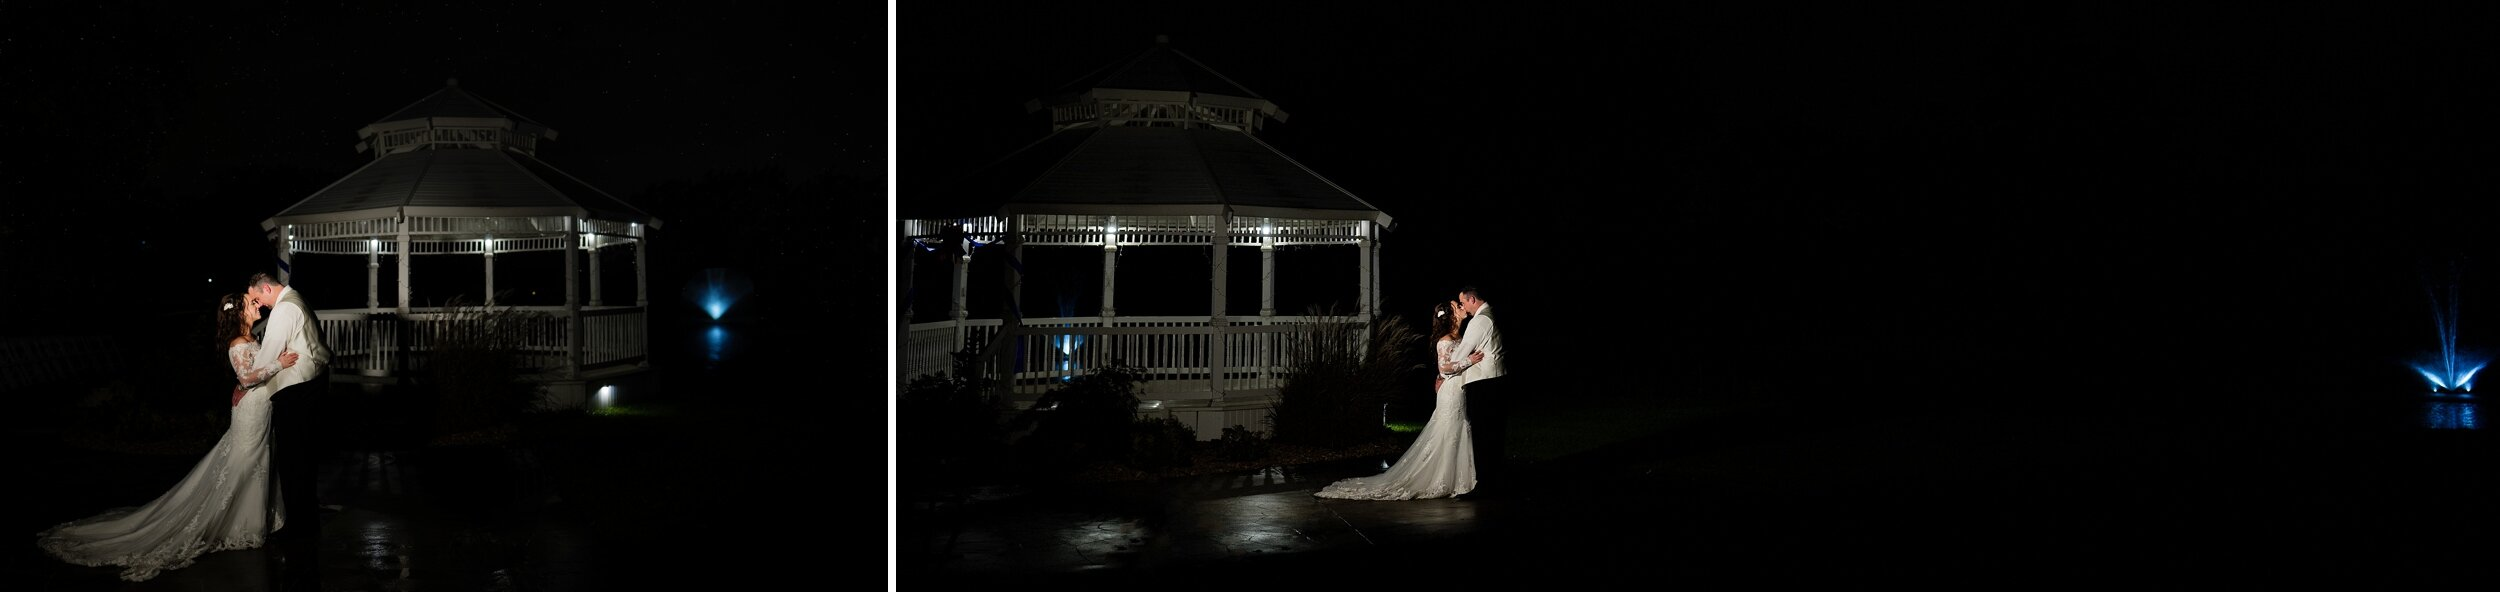 Slow dance outside at night for the bride and groom with a lit up fountain and gazebo.